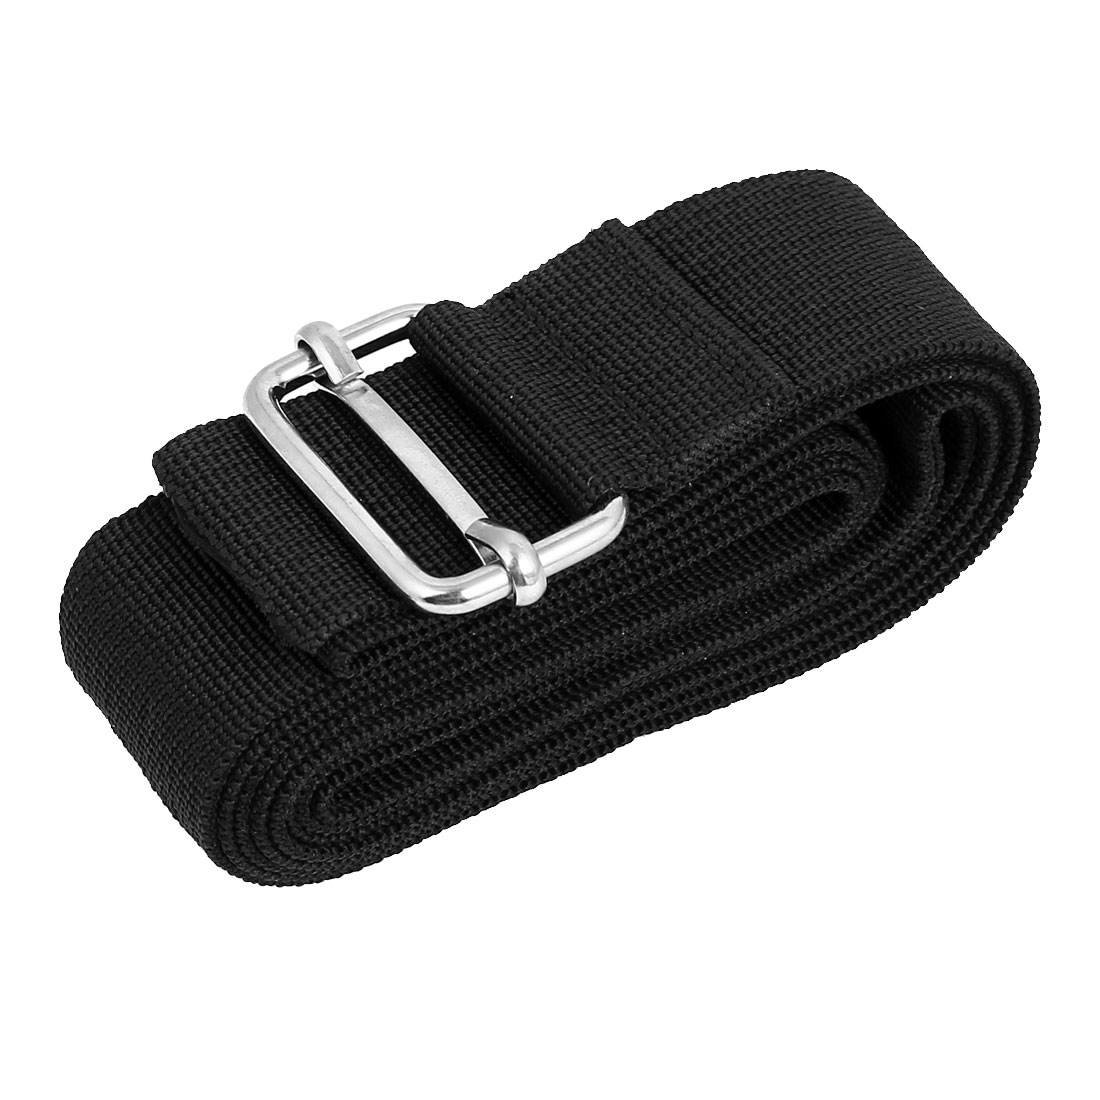 Metal Buckle Luggage Suitcase Backpack Baggage Adjustable Belt Strap Black 2M x 38mm